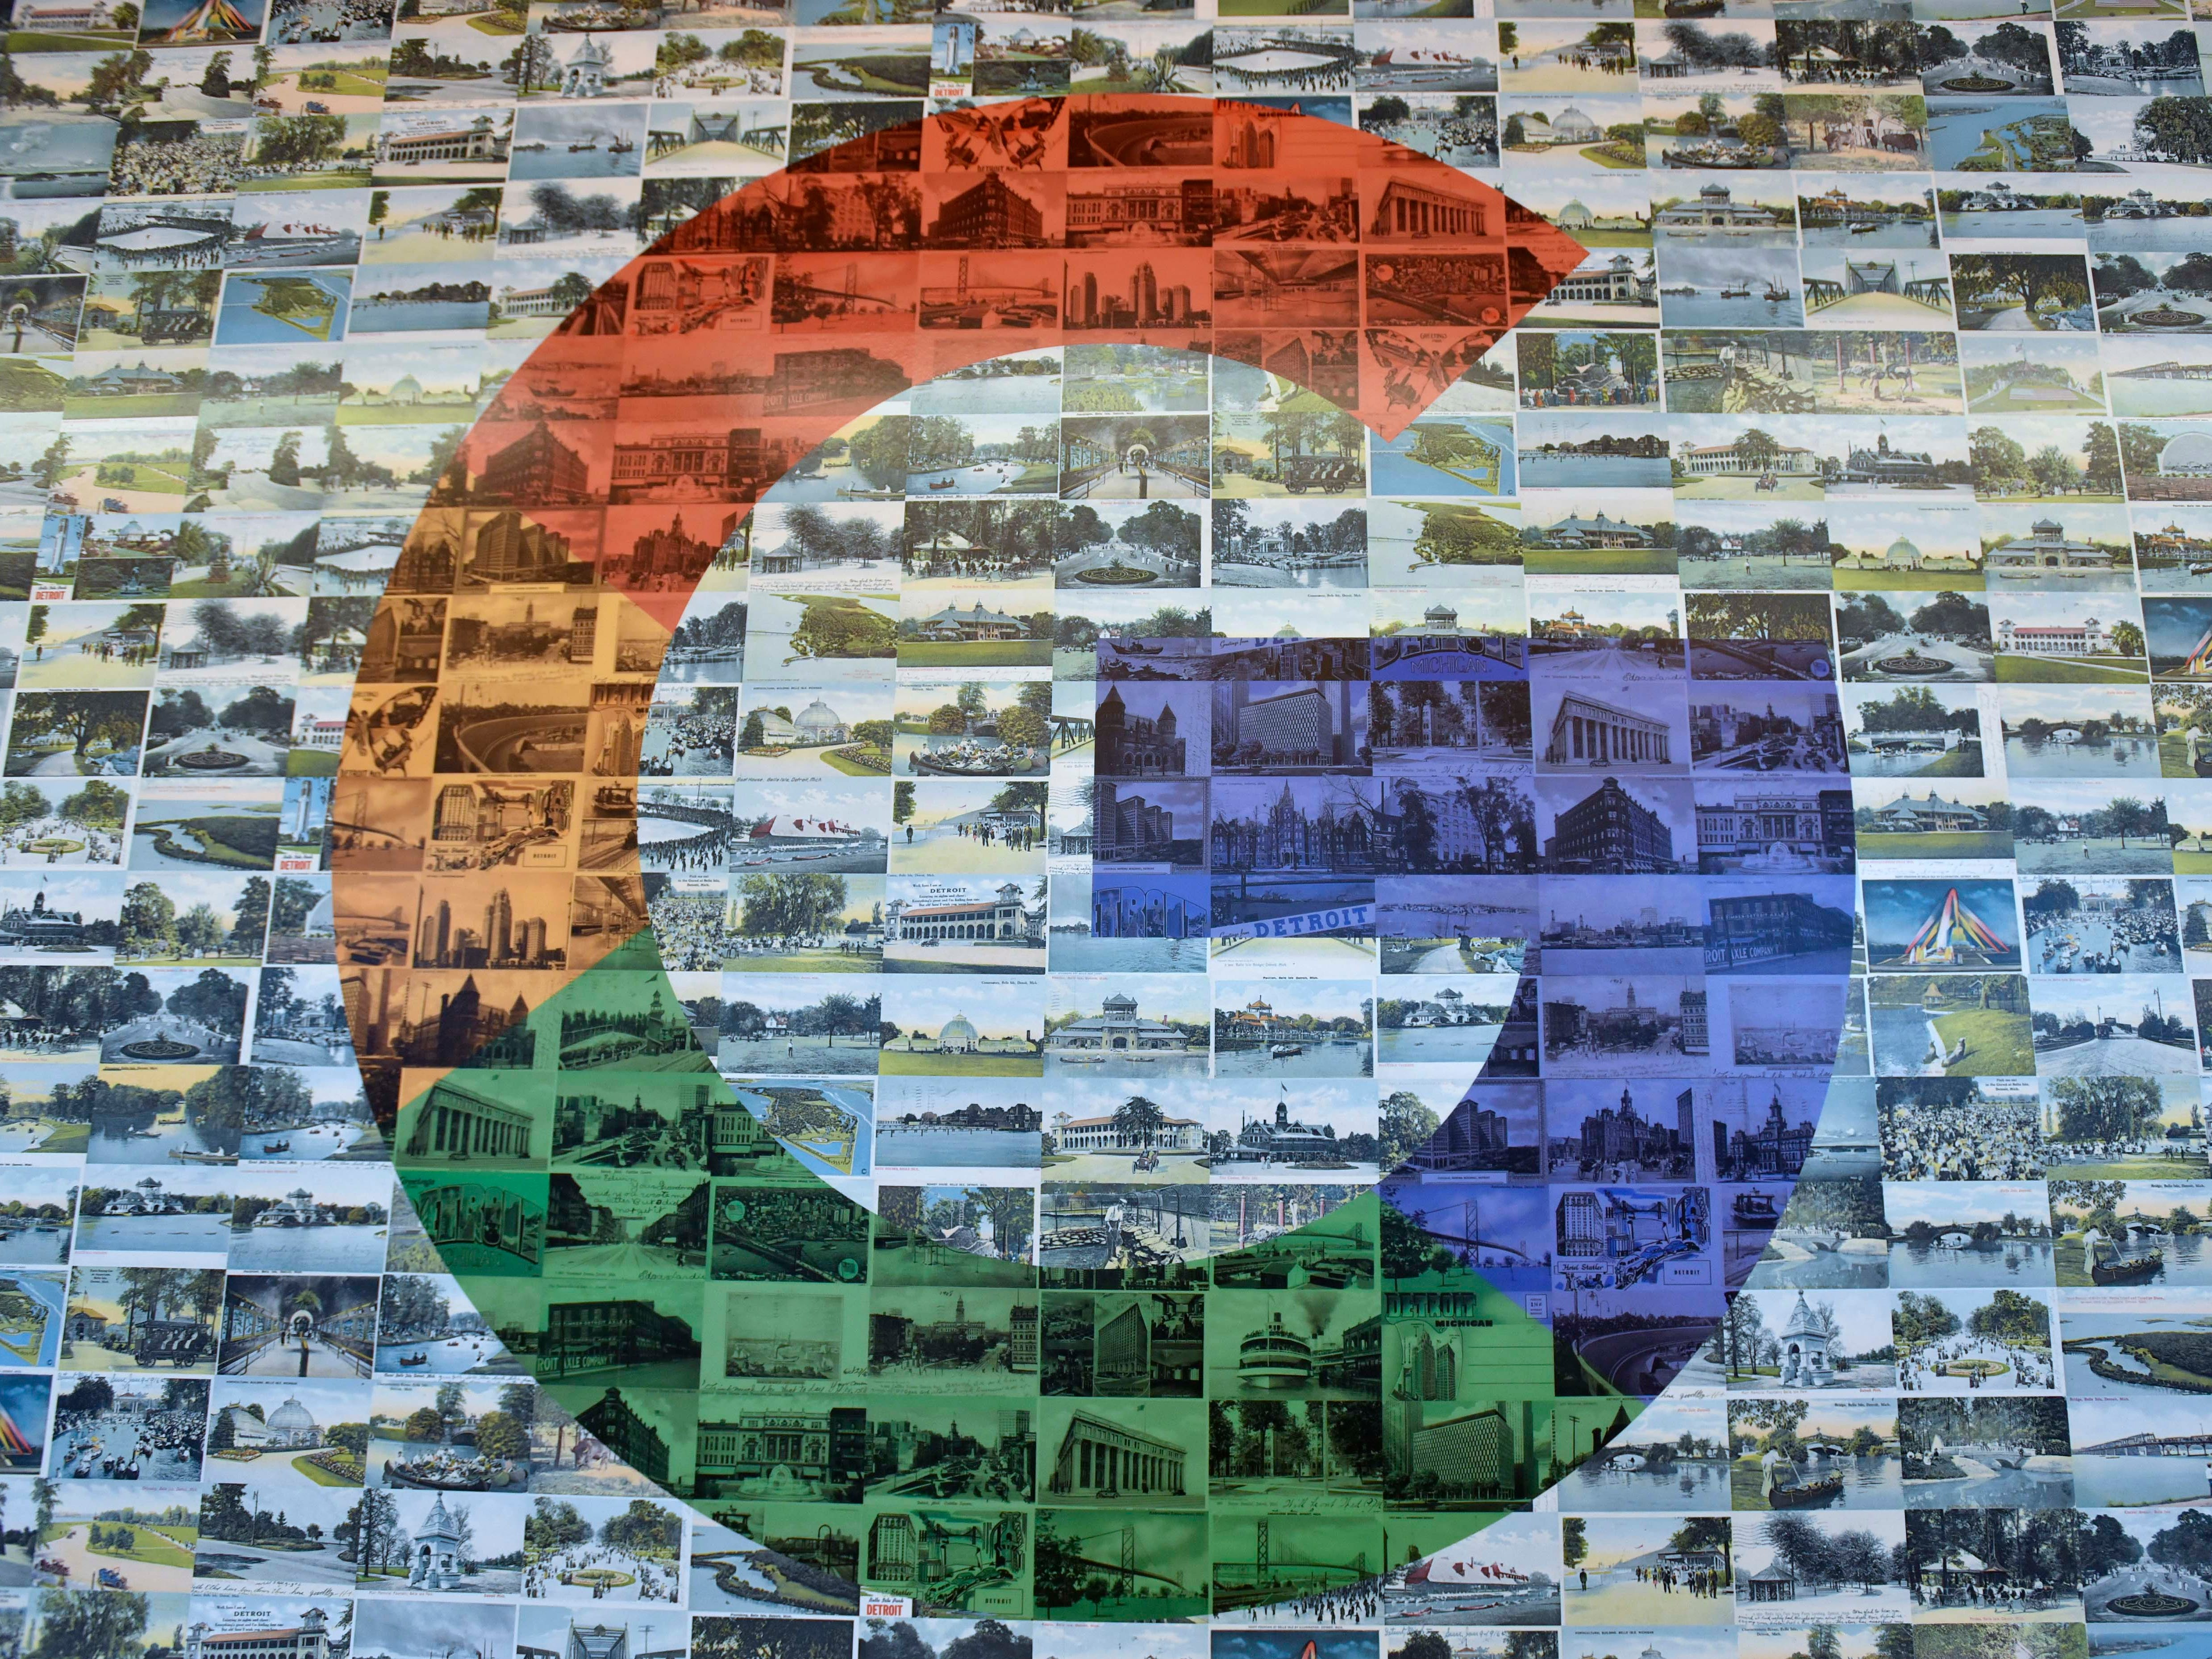 This is Google's icon, made from old Detroit post cards, on the wall in the Belle Isle room.